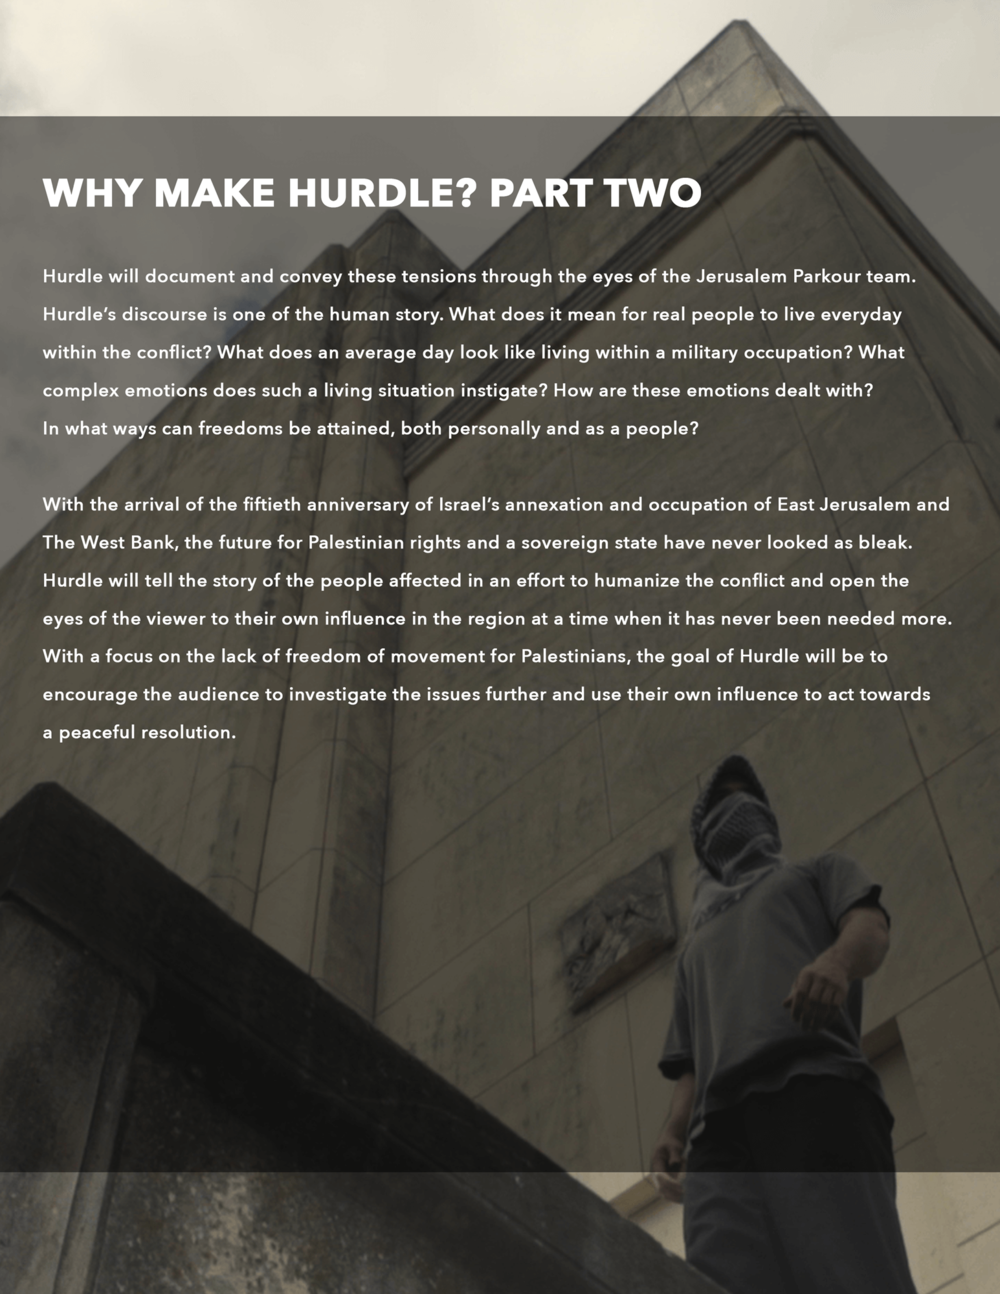 whymakehurdle_parttwo (1).png